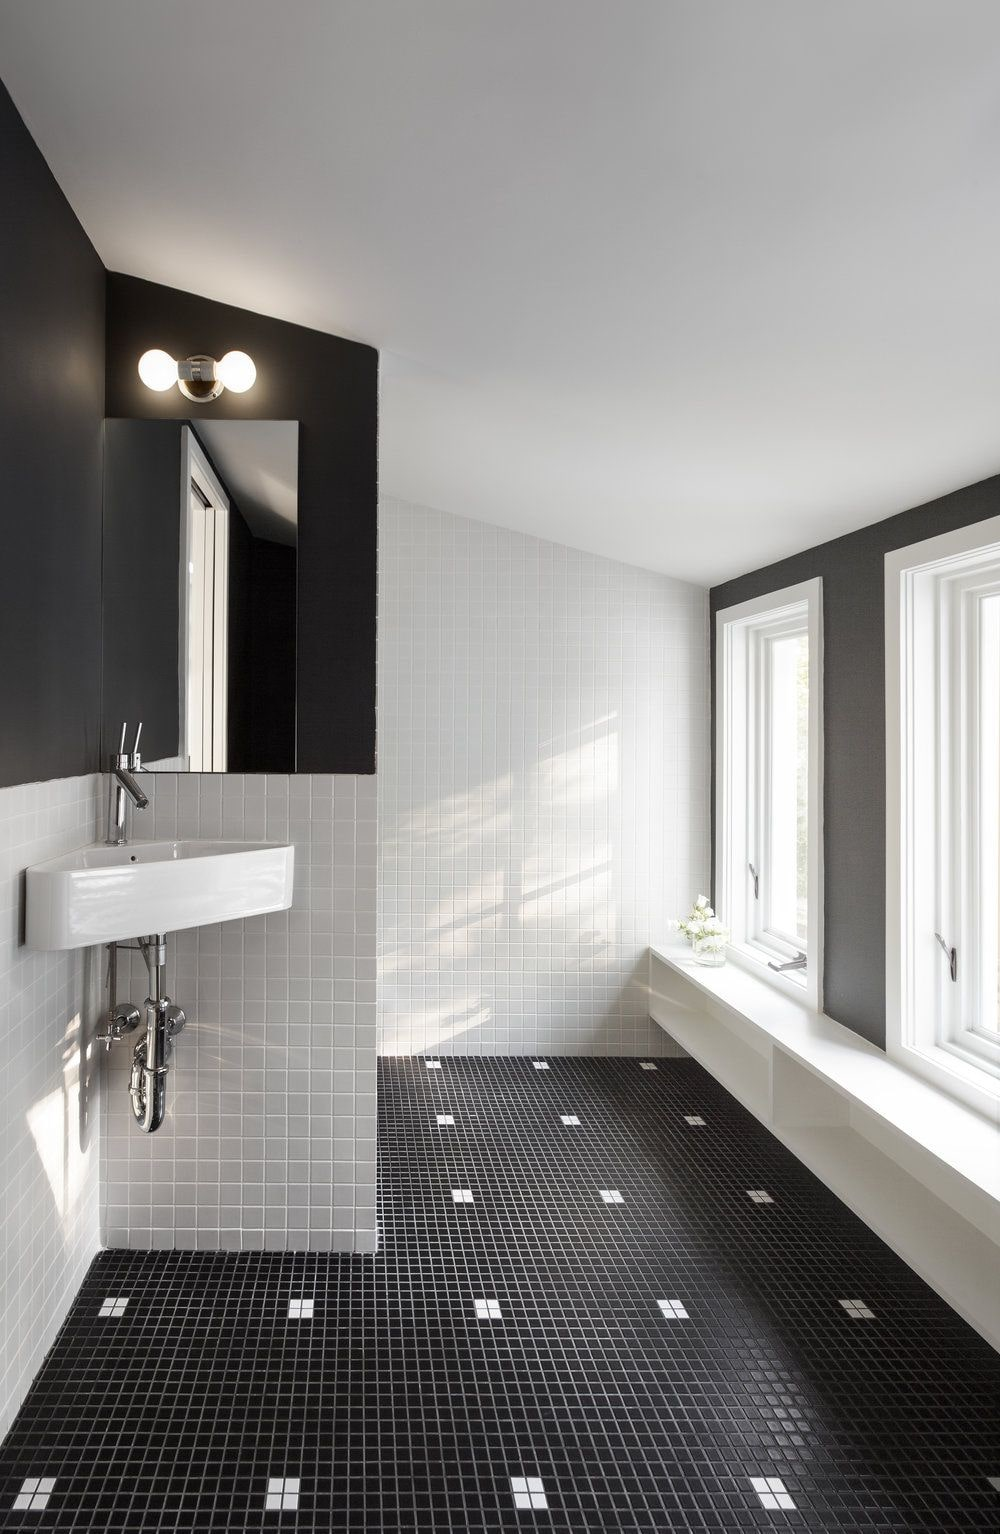 Black Bathroom Interior Design Ideas with Photos and Remodeling Advice. White painted walls and black floor for casual atmosphere